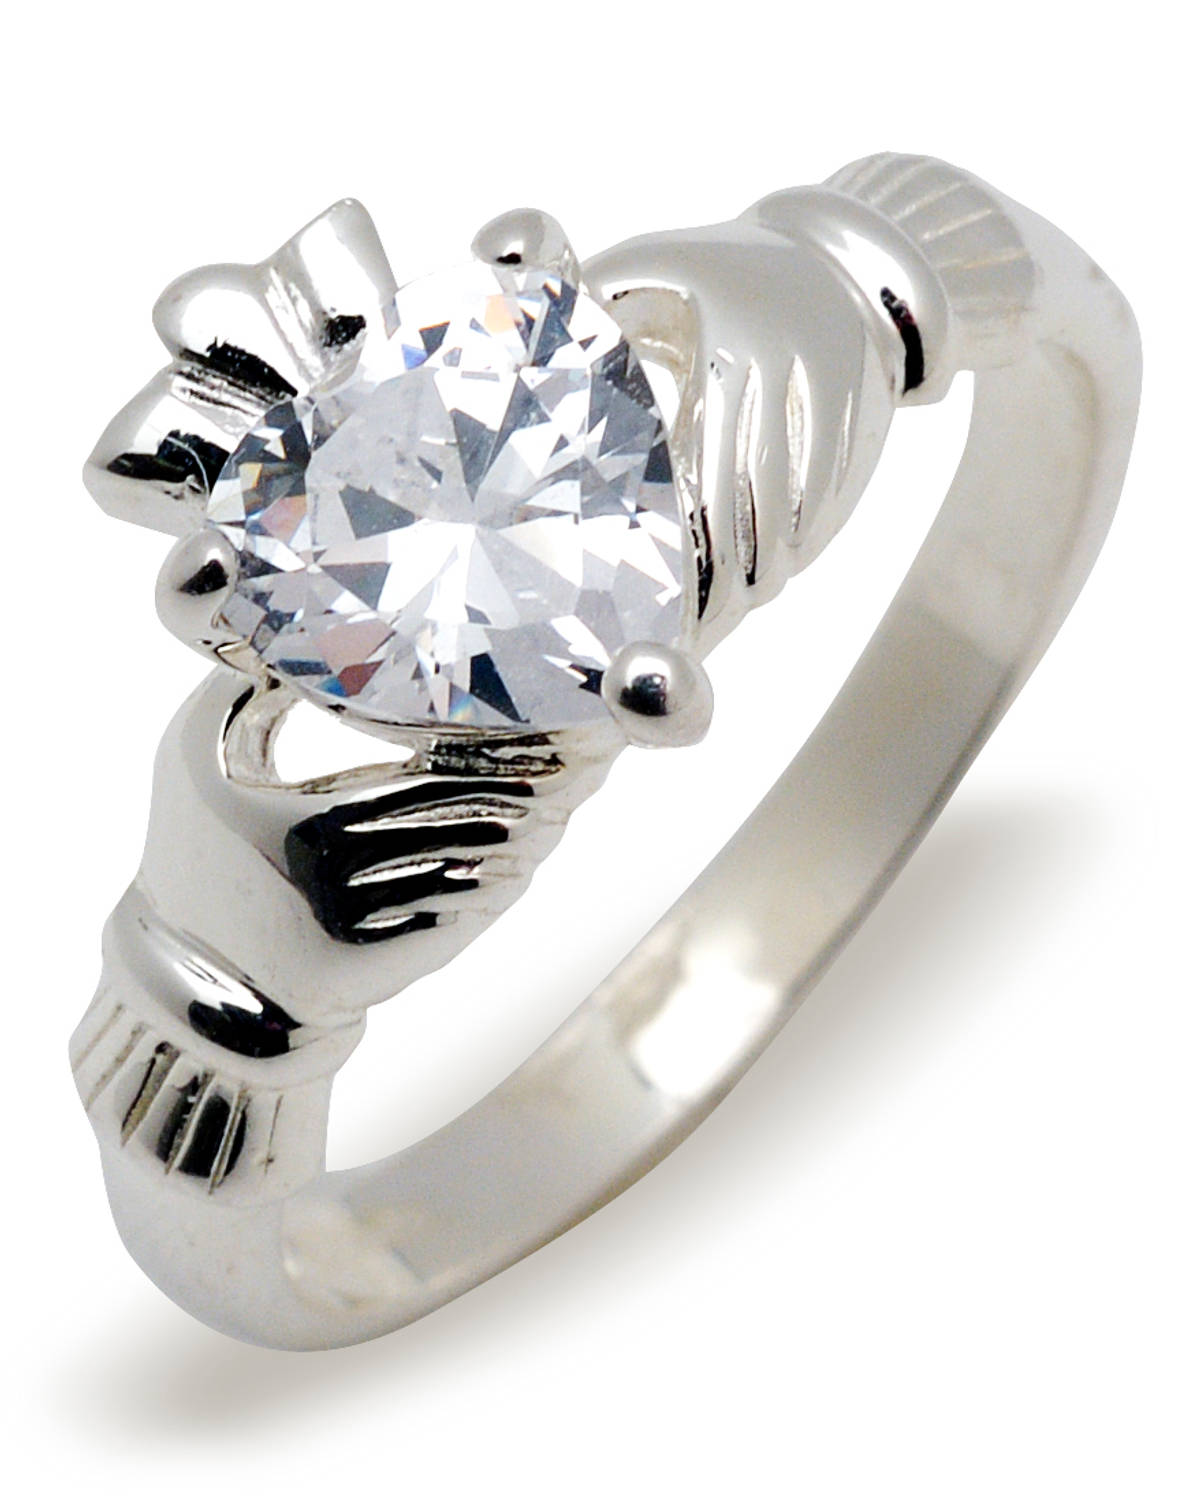 Silver claddagh birthstone ring available with birthstones for every month.Just email us advising of the month required.